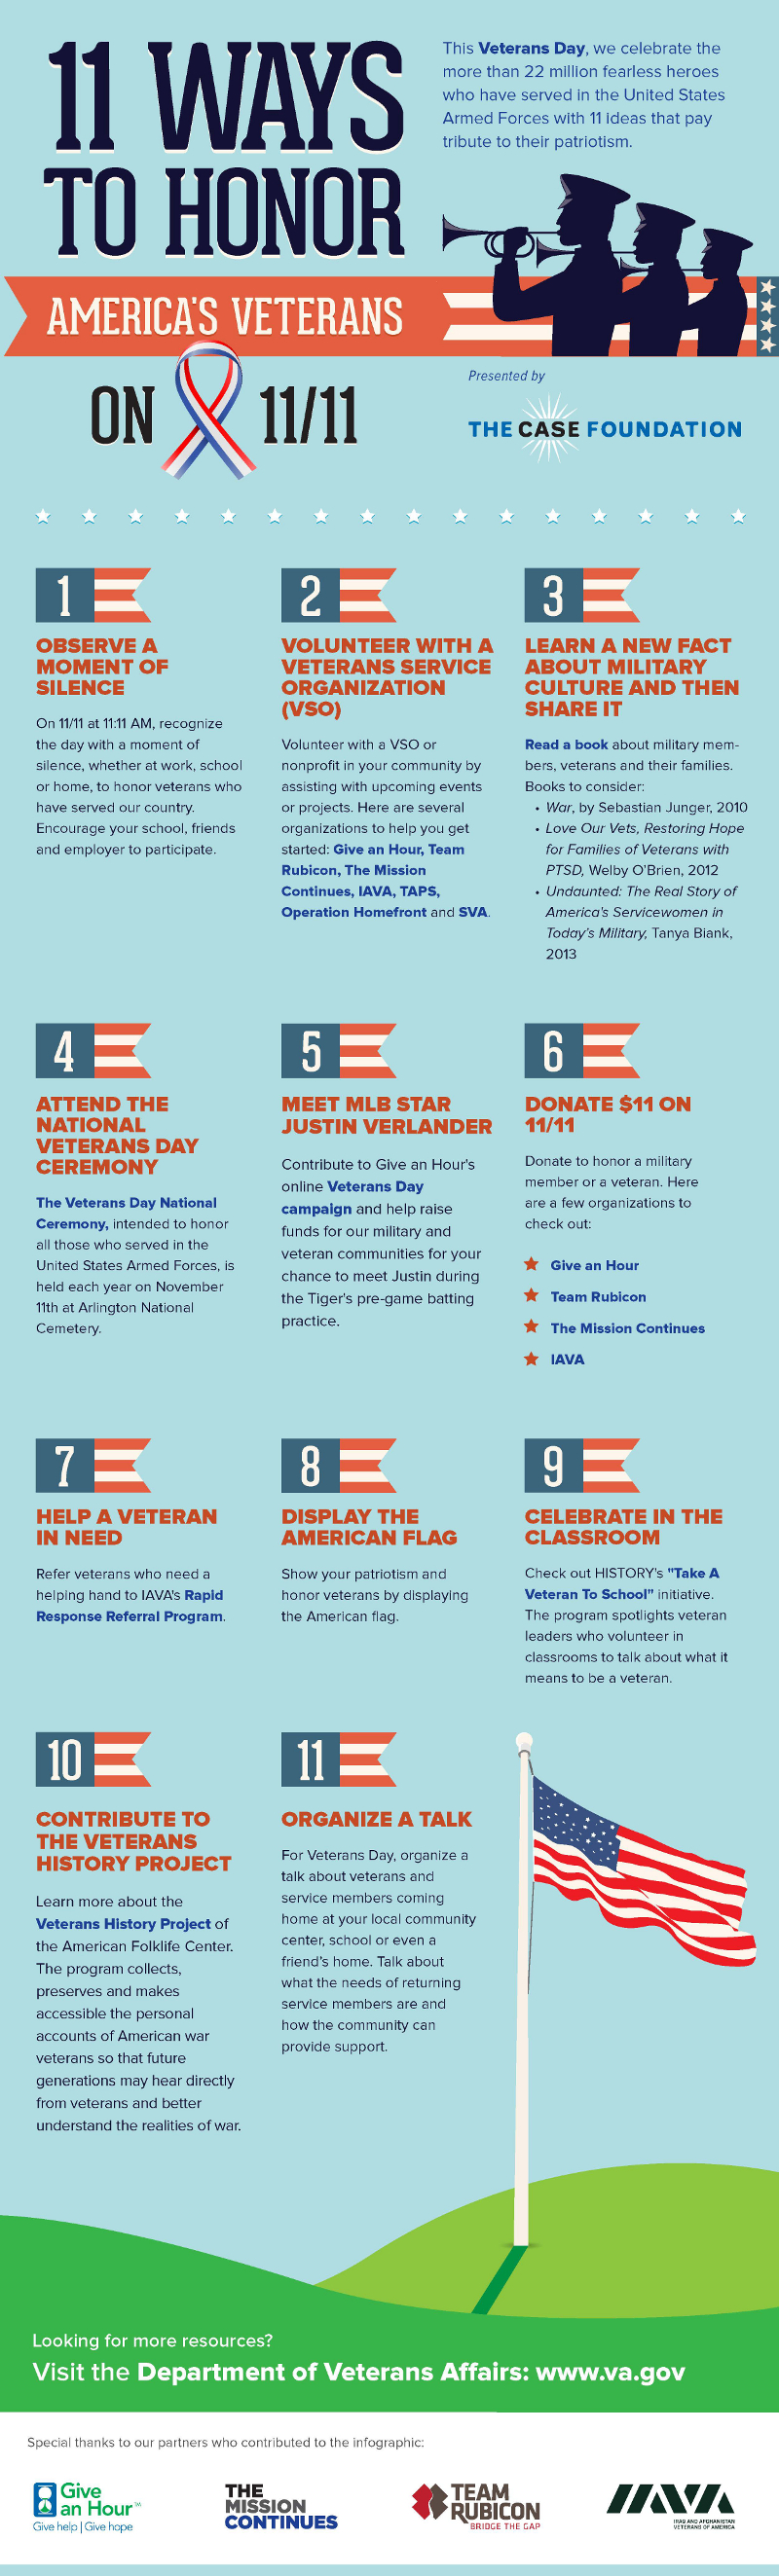 ideas for exemplification essay topics com the below infographic outlines a listing of ways to honor veterans increasing your knowledgebase on military culture will help